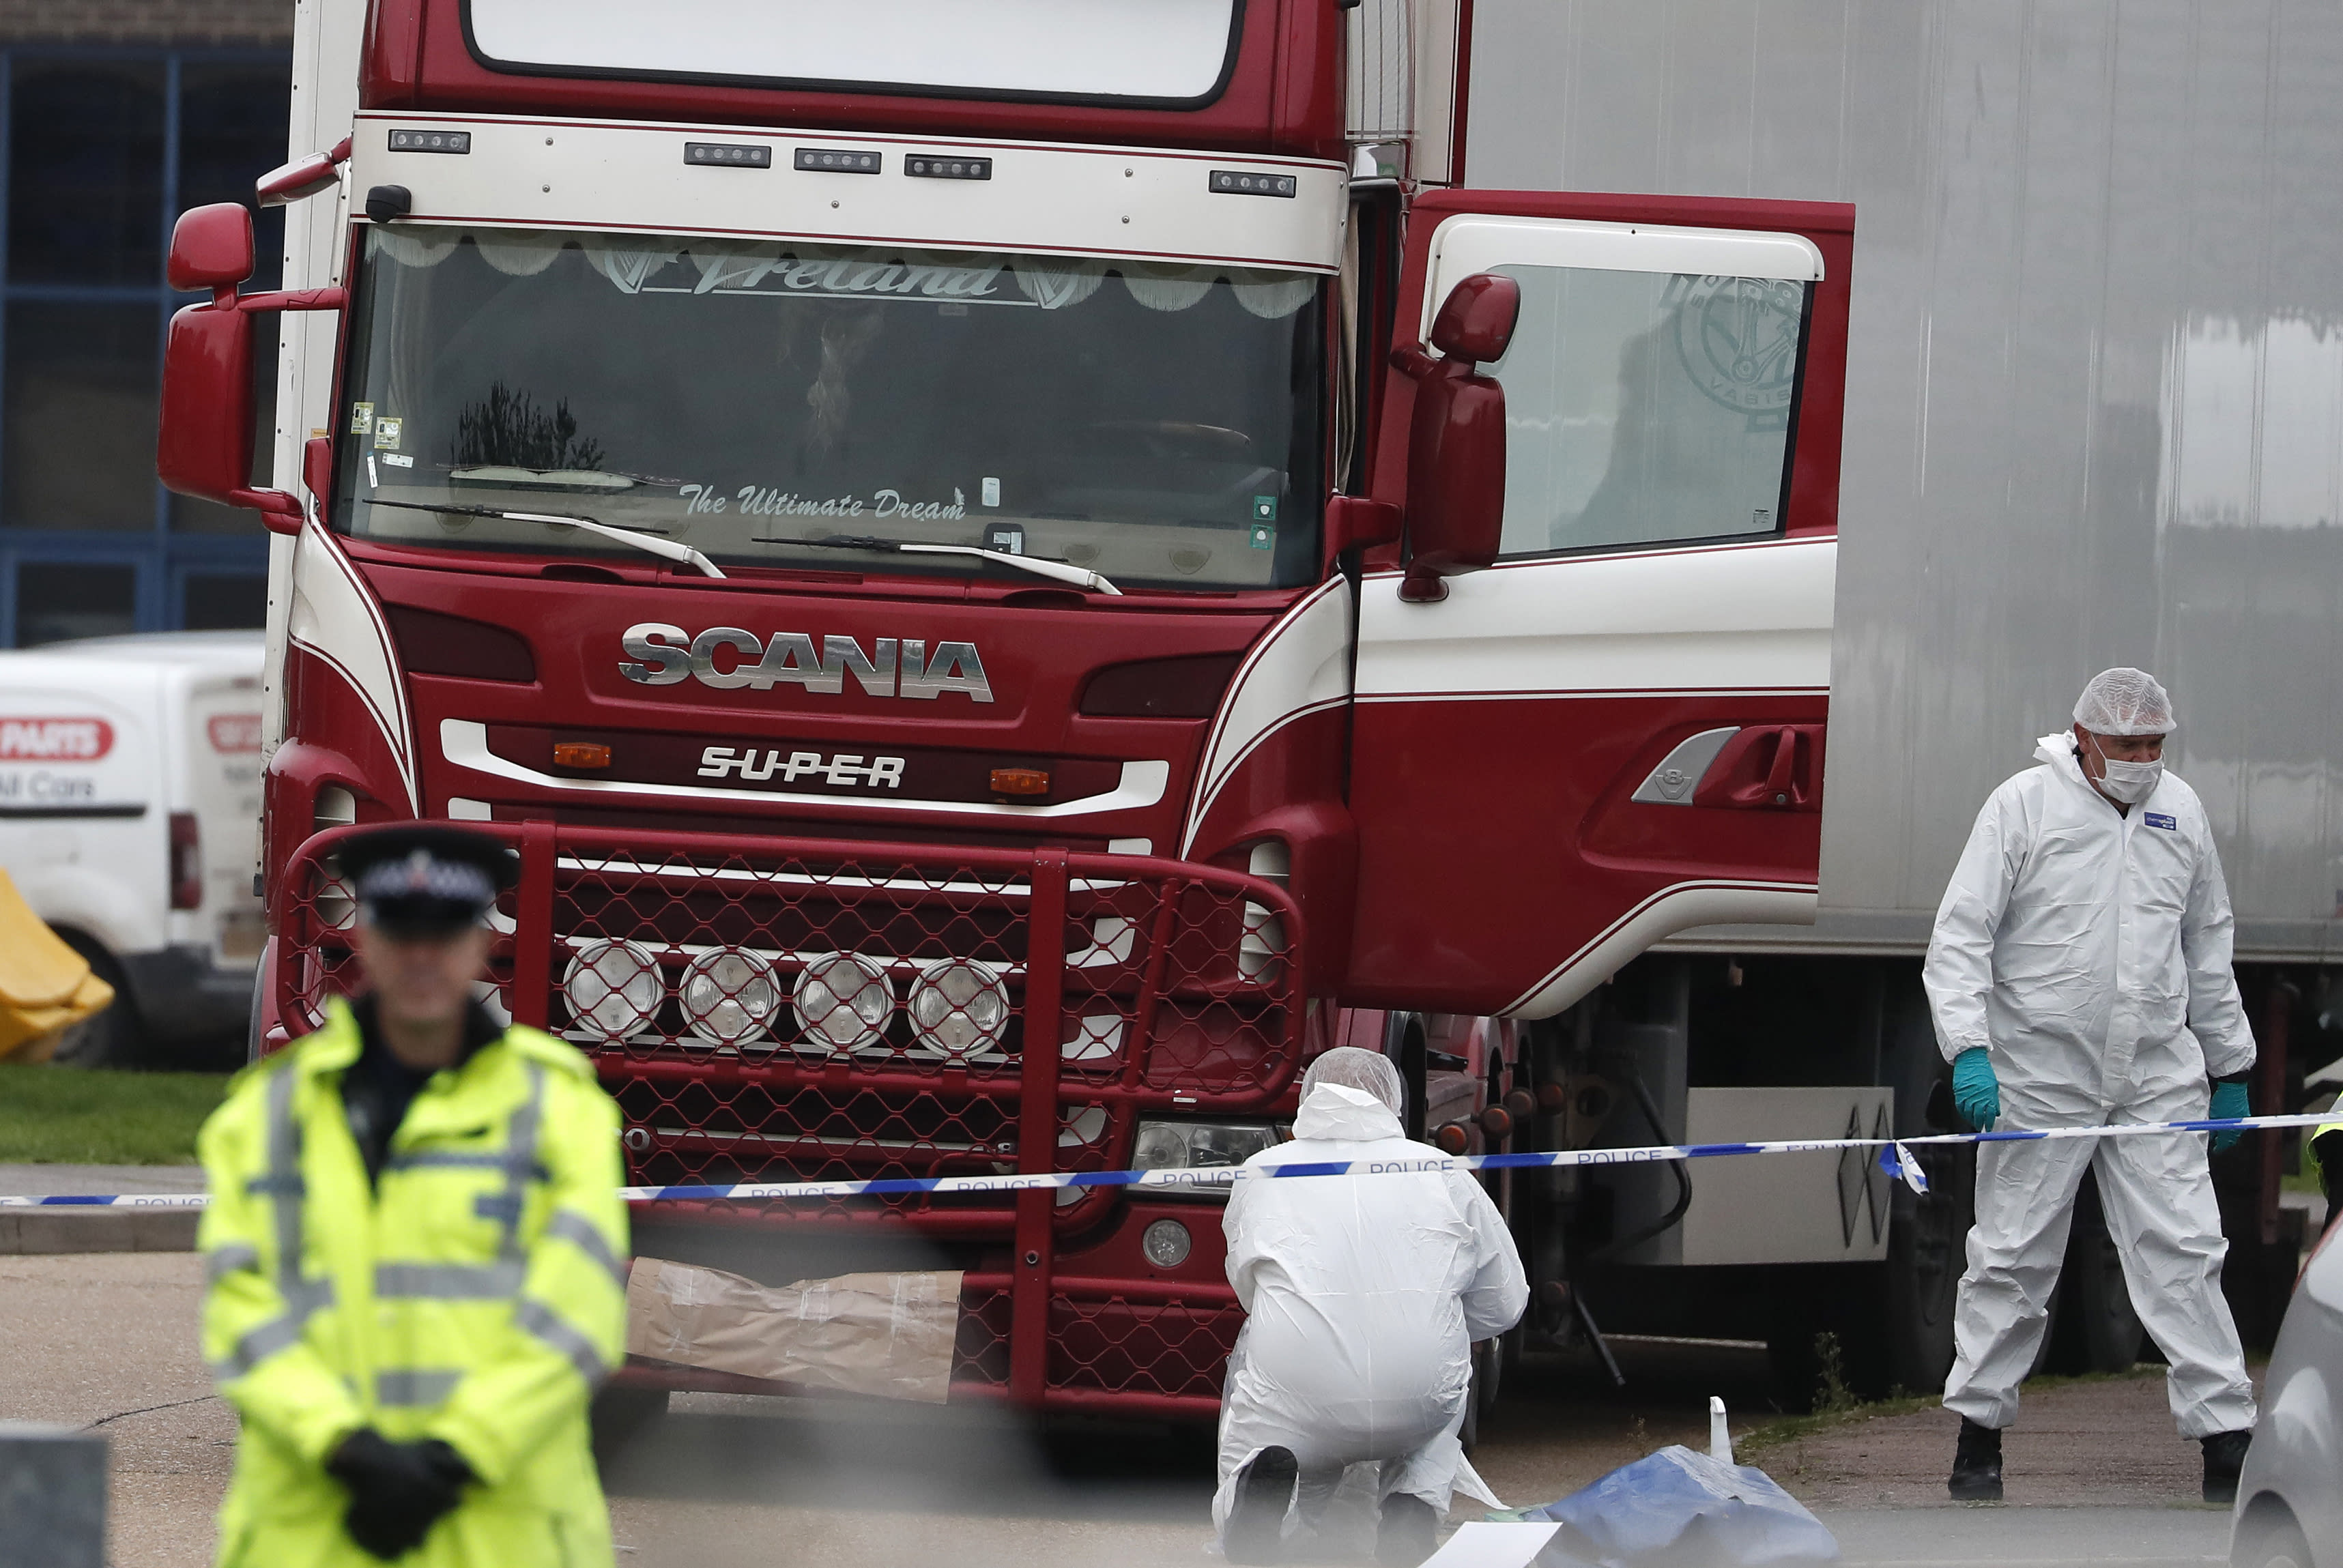 United Kingdom  lorry driver pleads guilty over migrant truck deaths